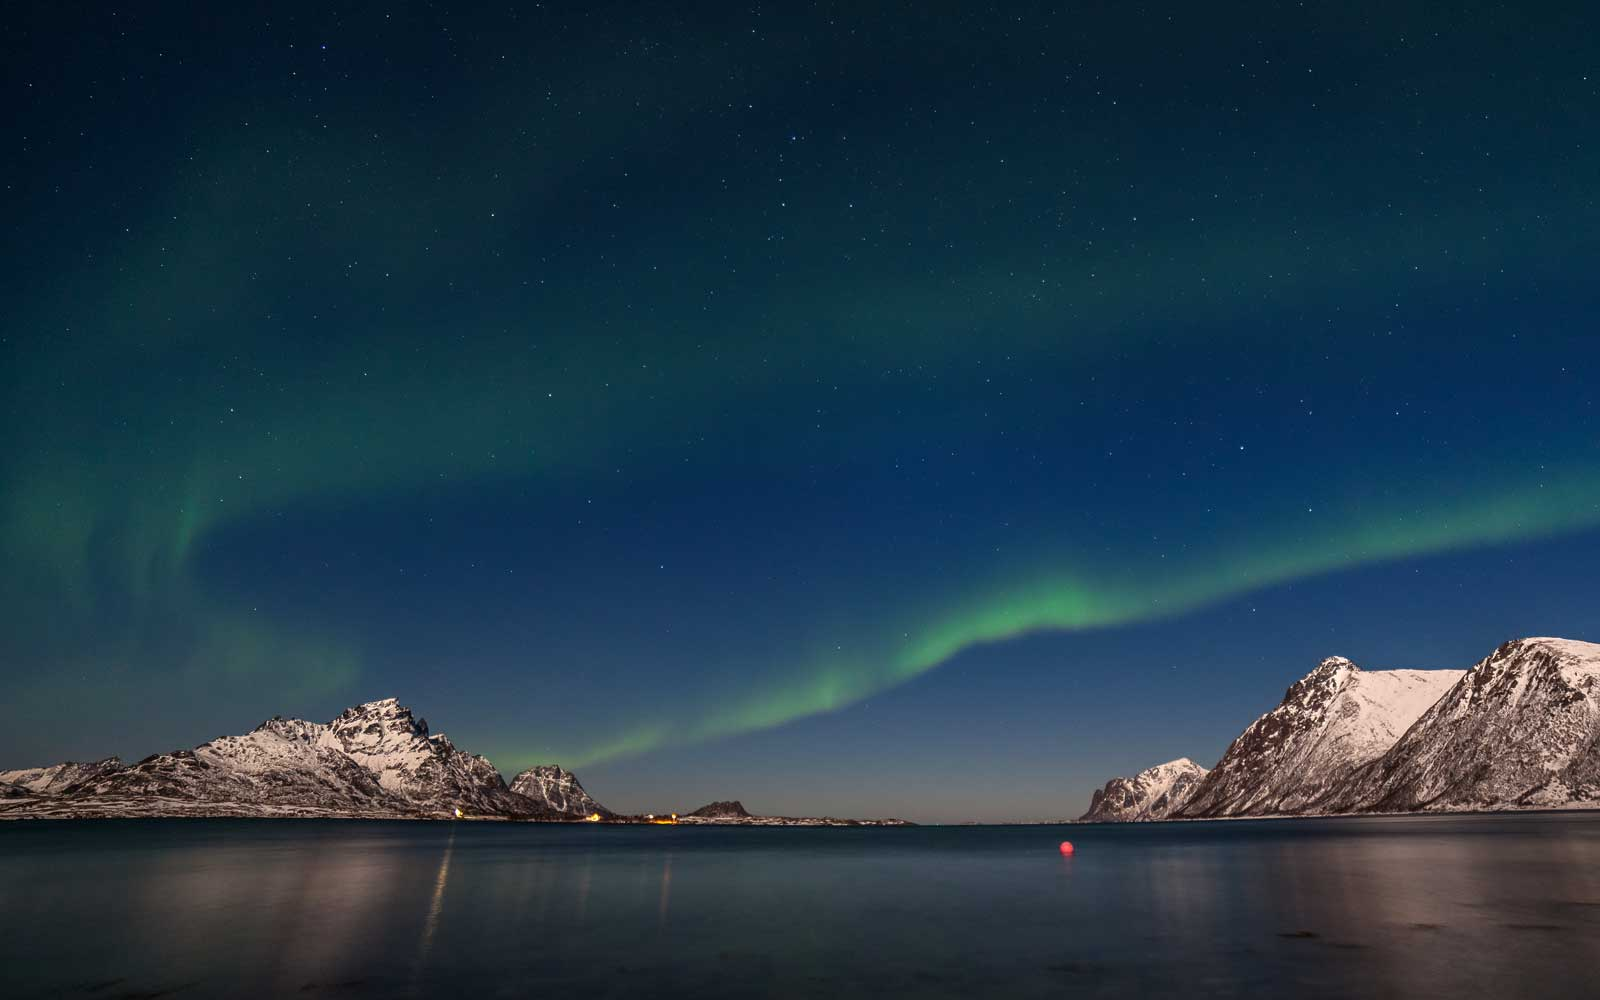 Northern Lights in Lofoten Islands, Norway